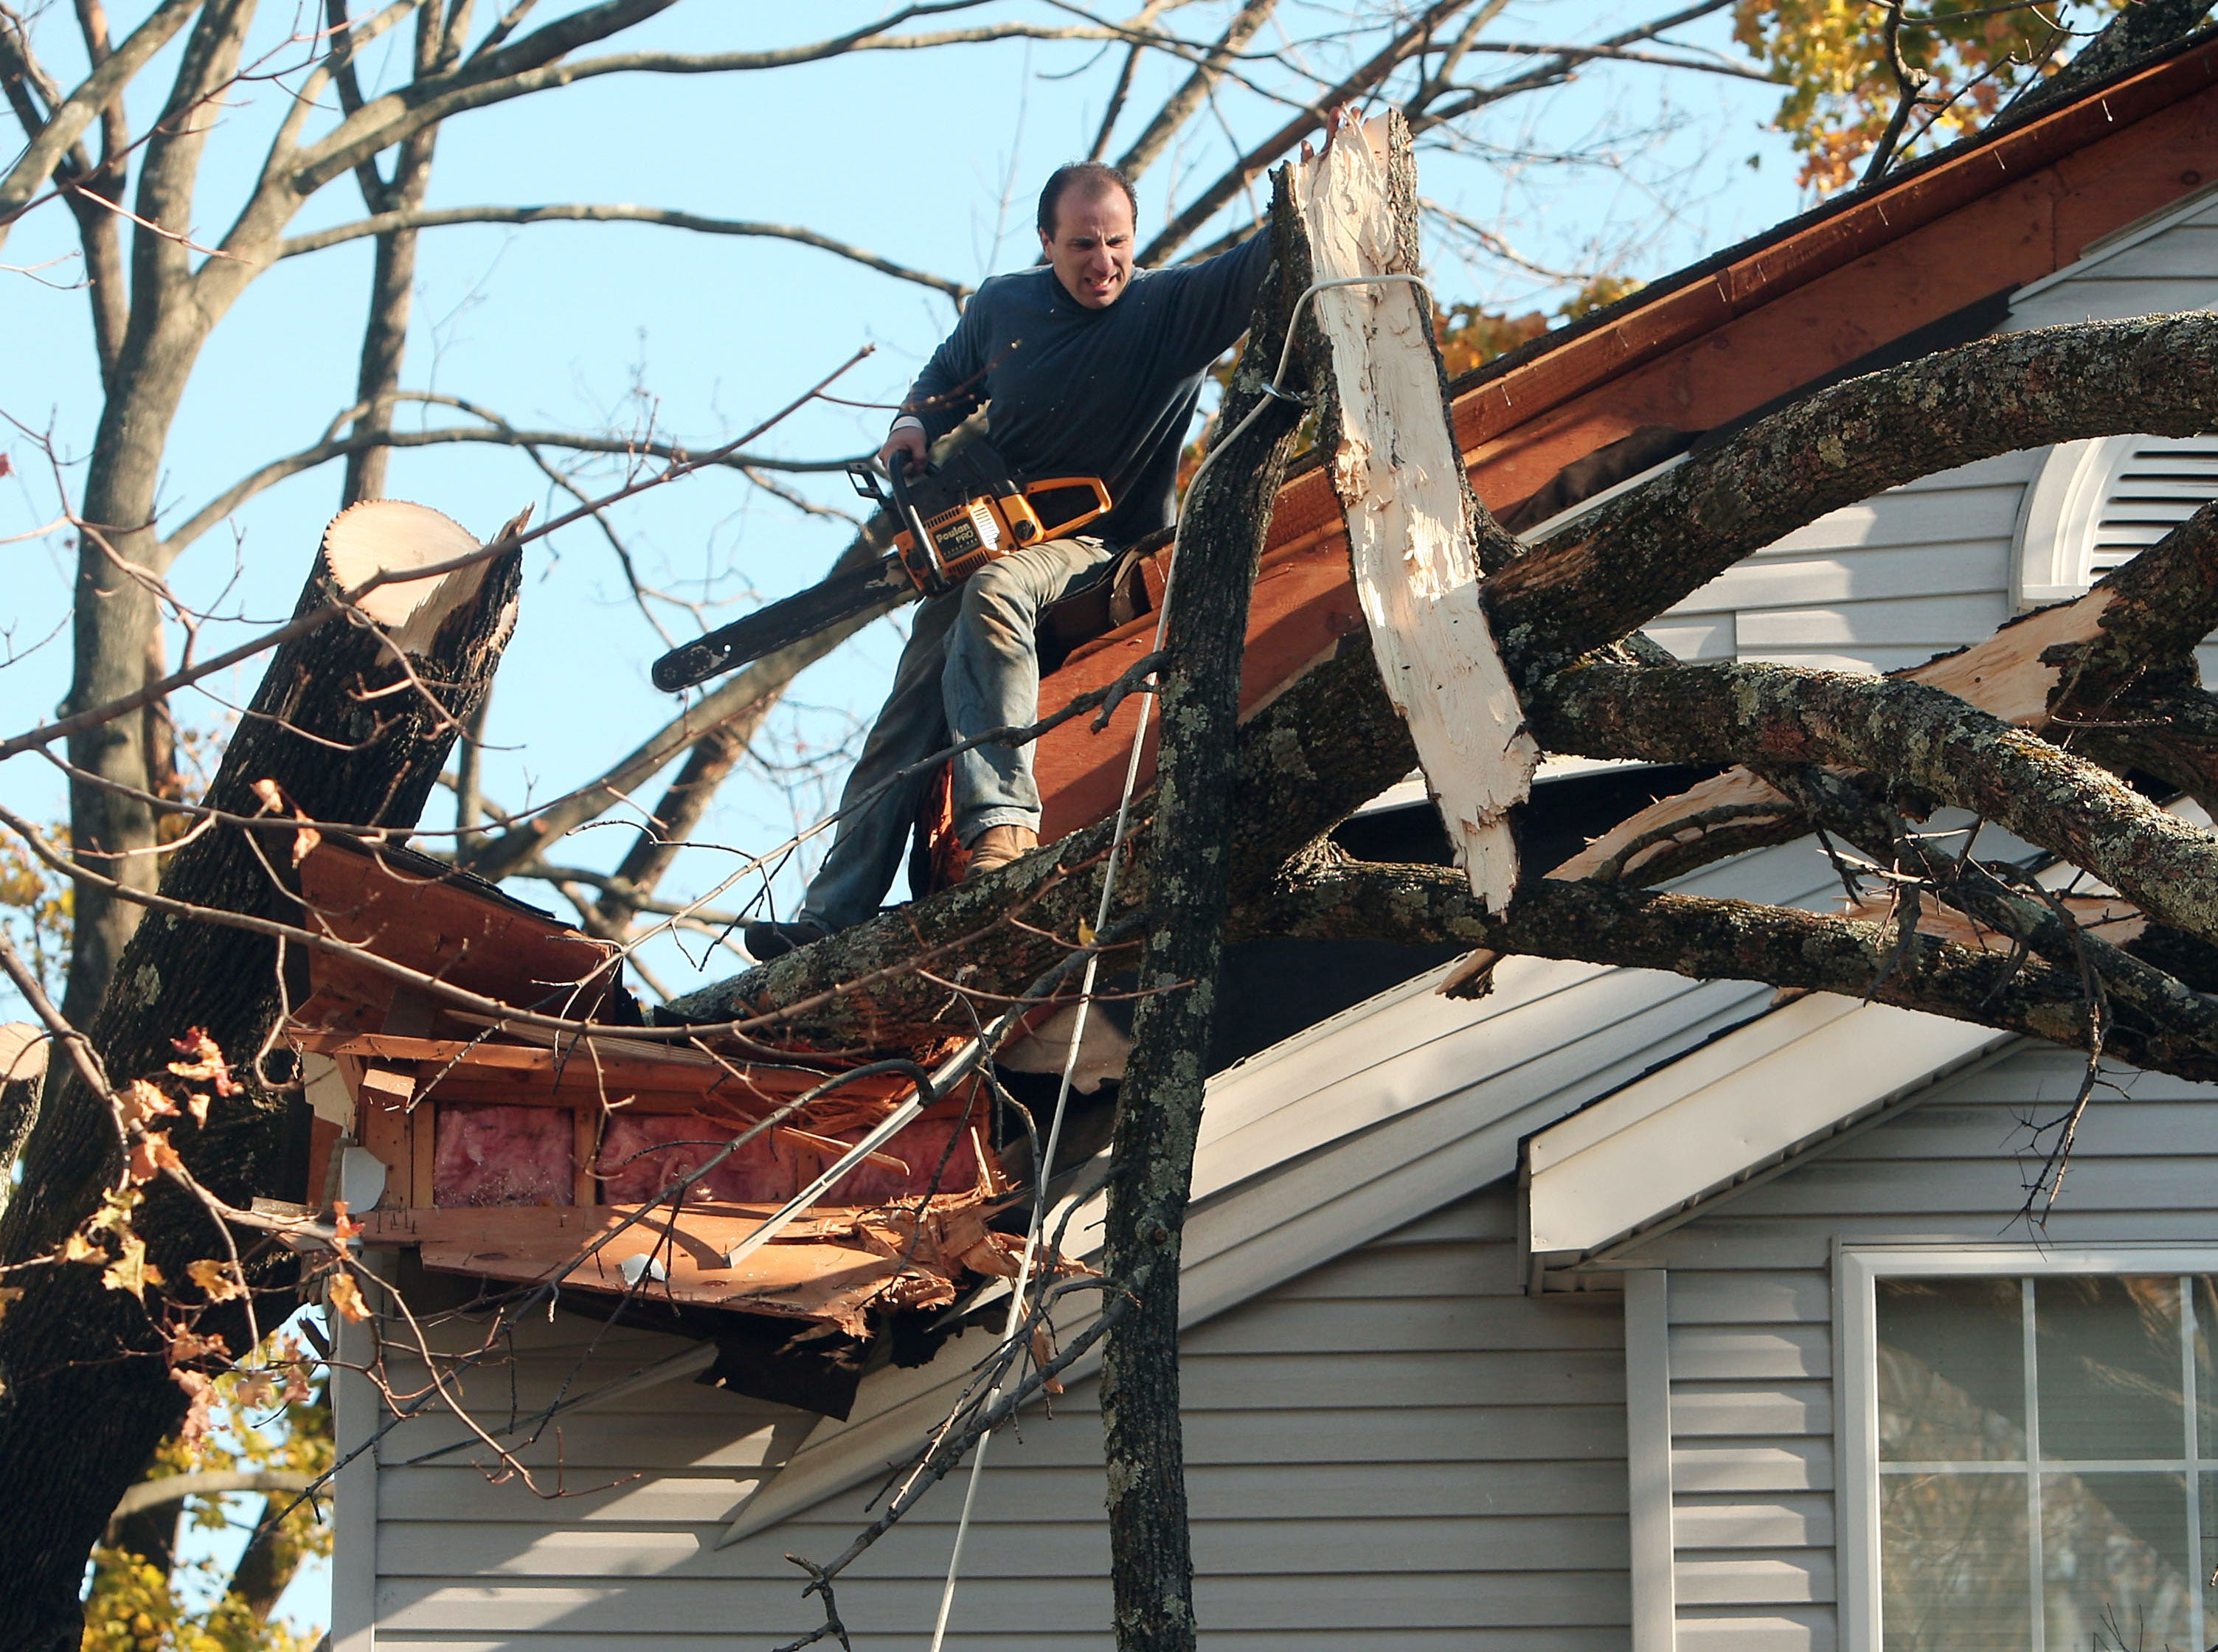 Morristown, N.J.- November 5, 2012--Joe Esposito of HLM Designs in Randolph, NJ take down a large tree that destroyed part of a Morristown homeowners roof during Hurricane Sandy.